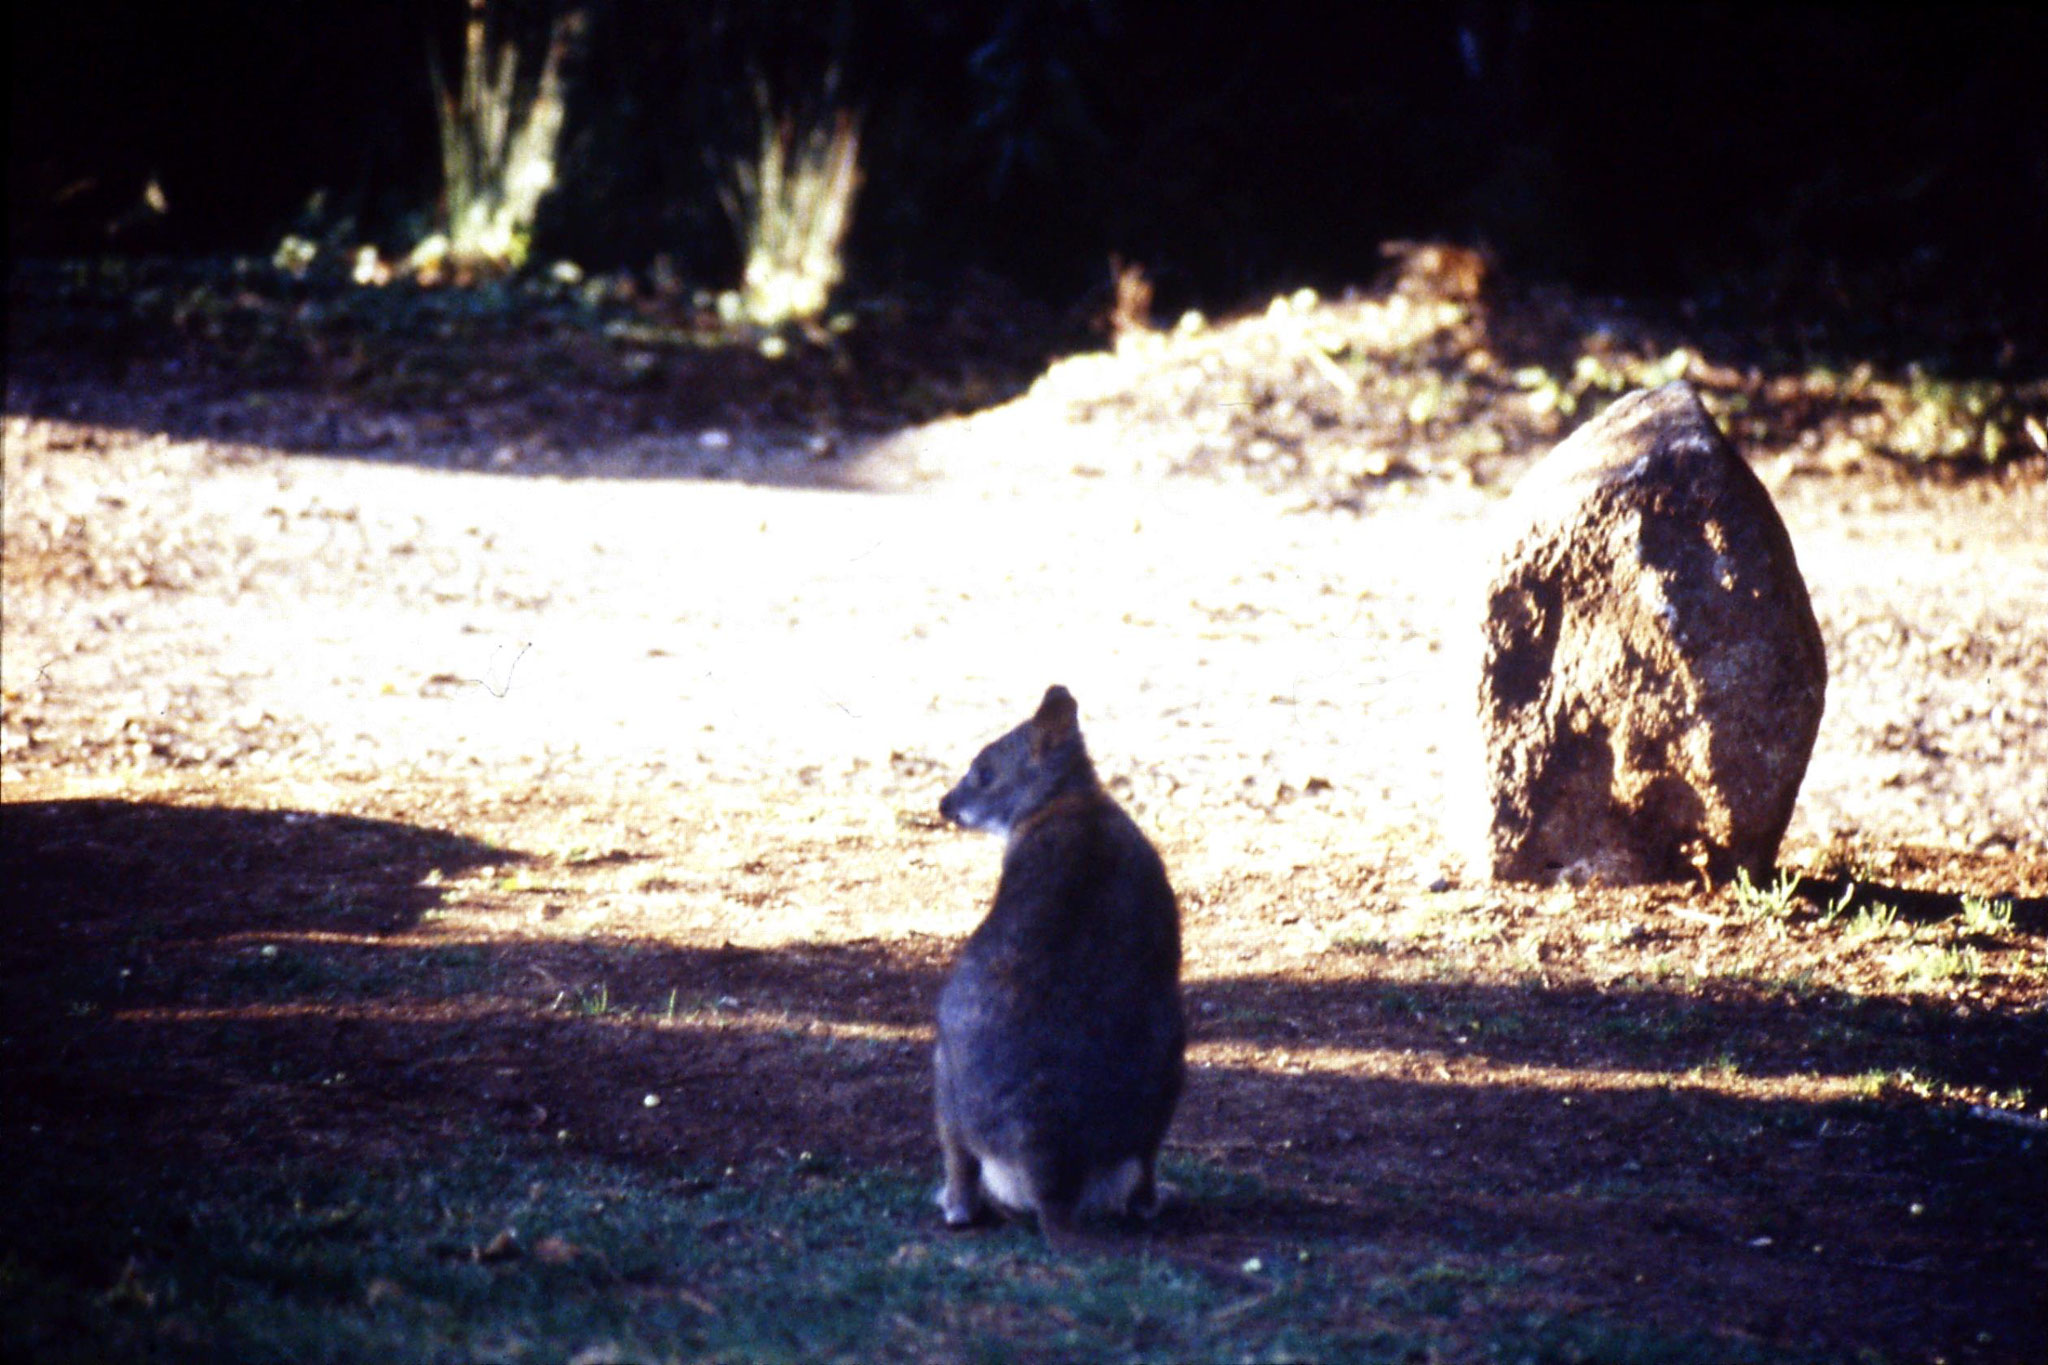 12/10/1990: 3: Mt Lamington, pademelon